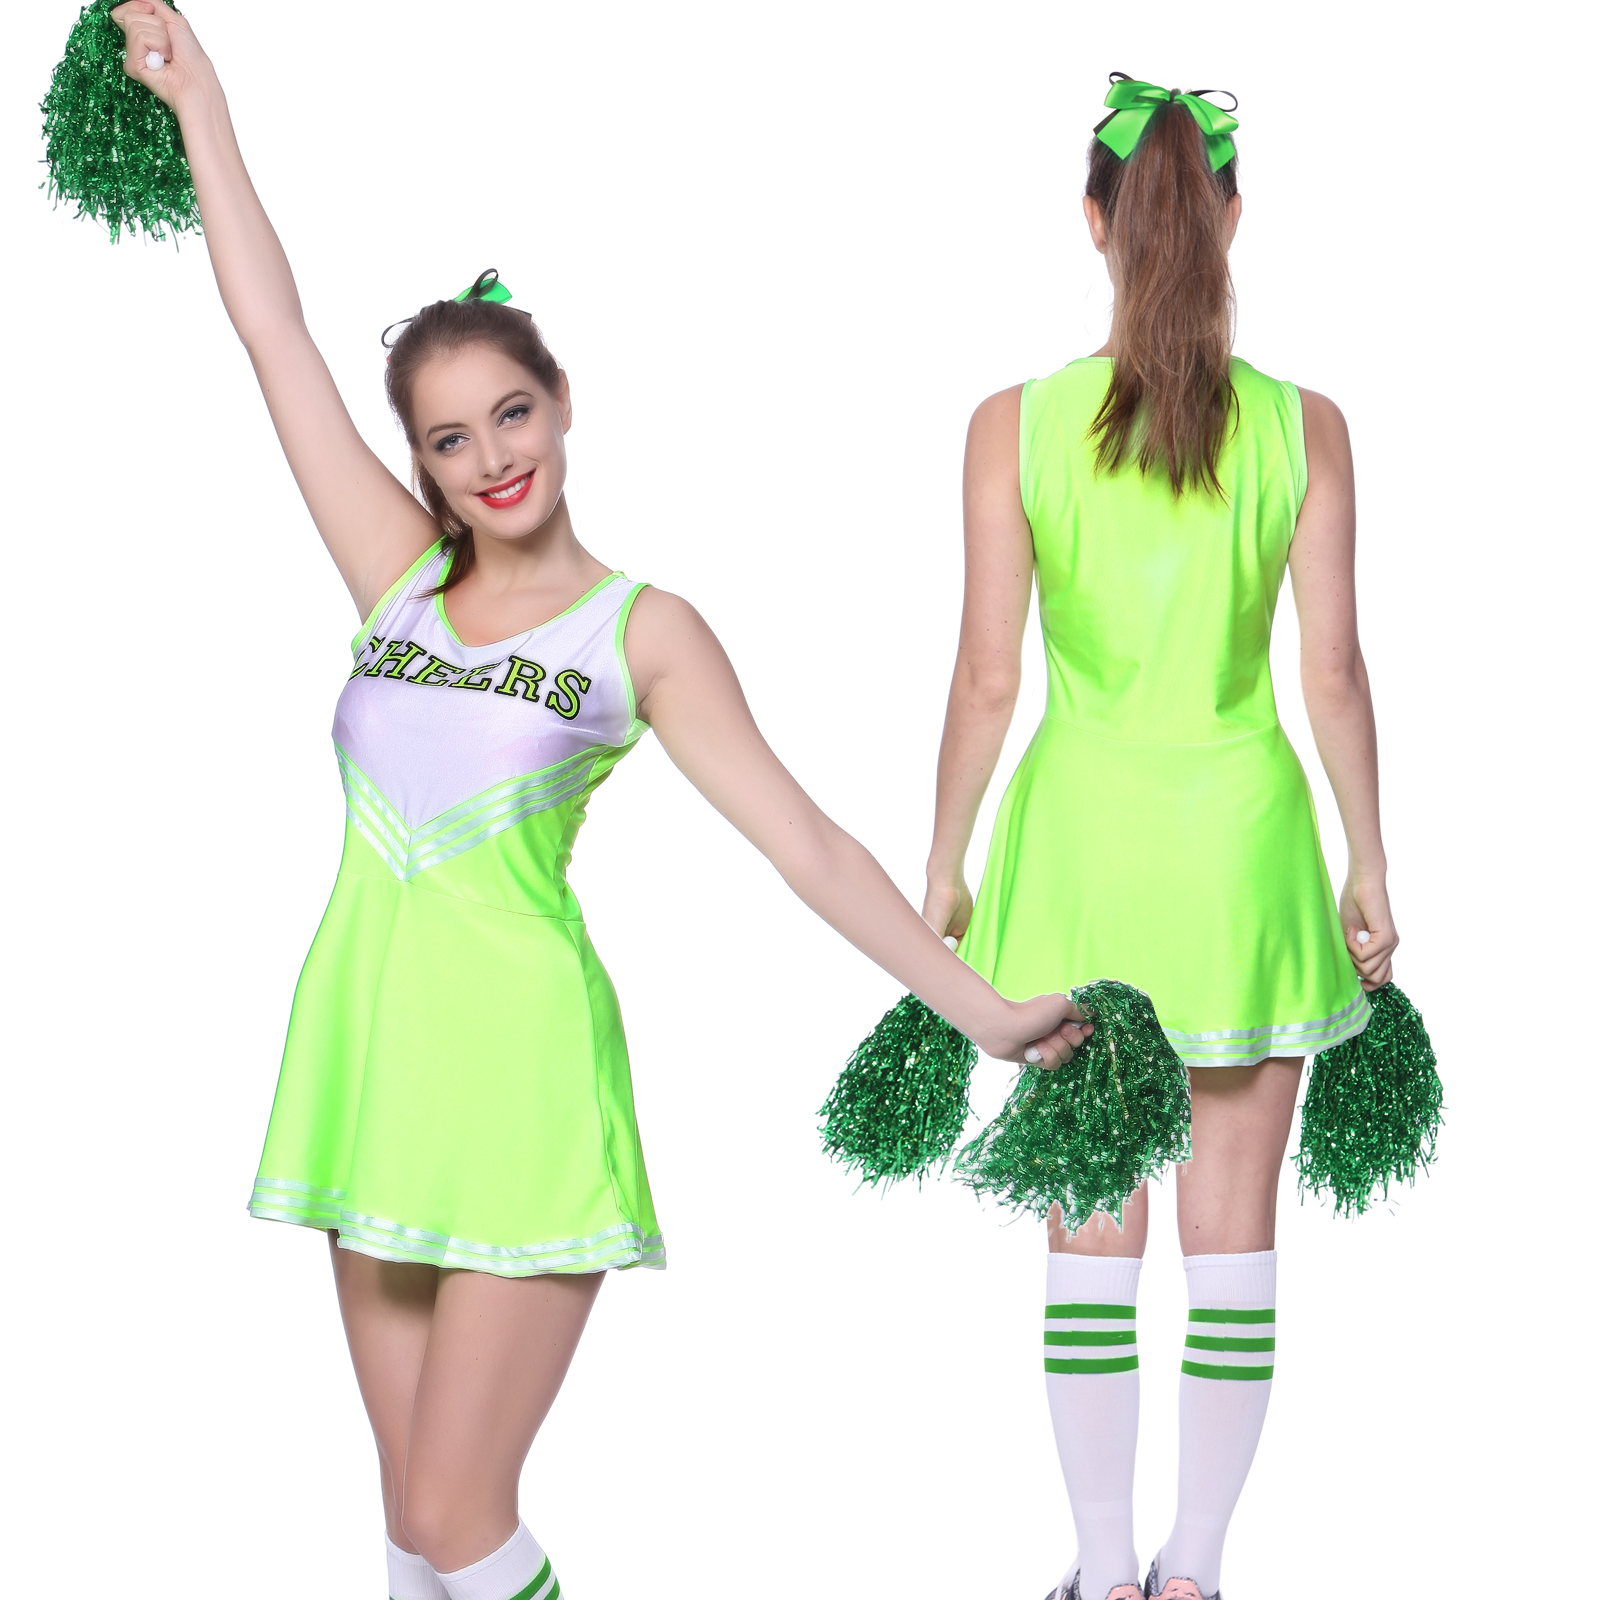 High School Girl Glee Cheerleader Uniform Cheerleading Fancy Dress w/ Pompoms | eBay  sc 1 st  eBay & High School Girl Glee Cheerleader Uniform Cheerleading Fancy Dress w ...